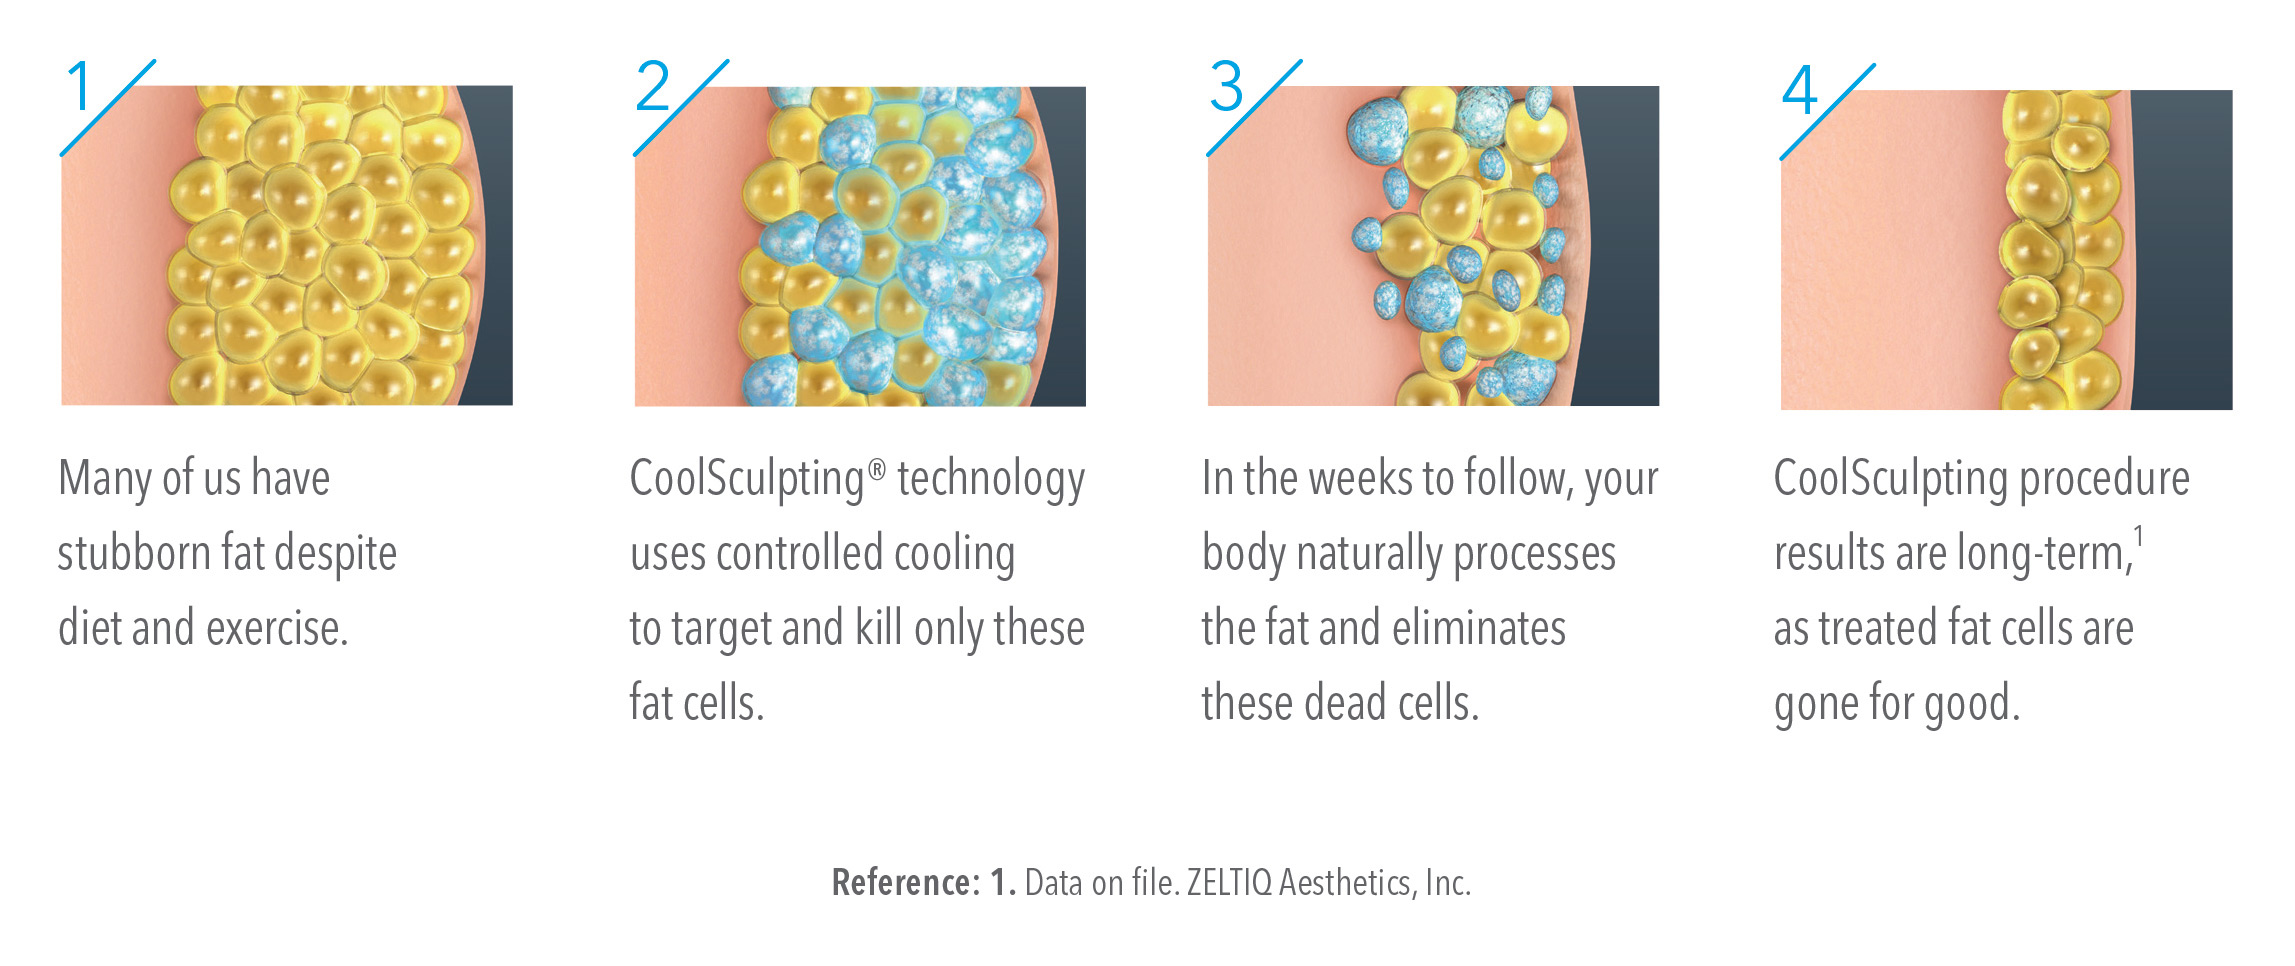 Illustration of the CoolSculpting process.